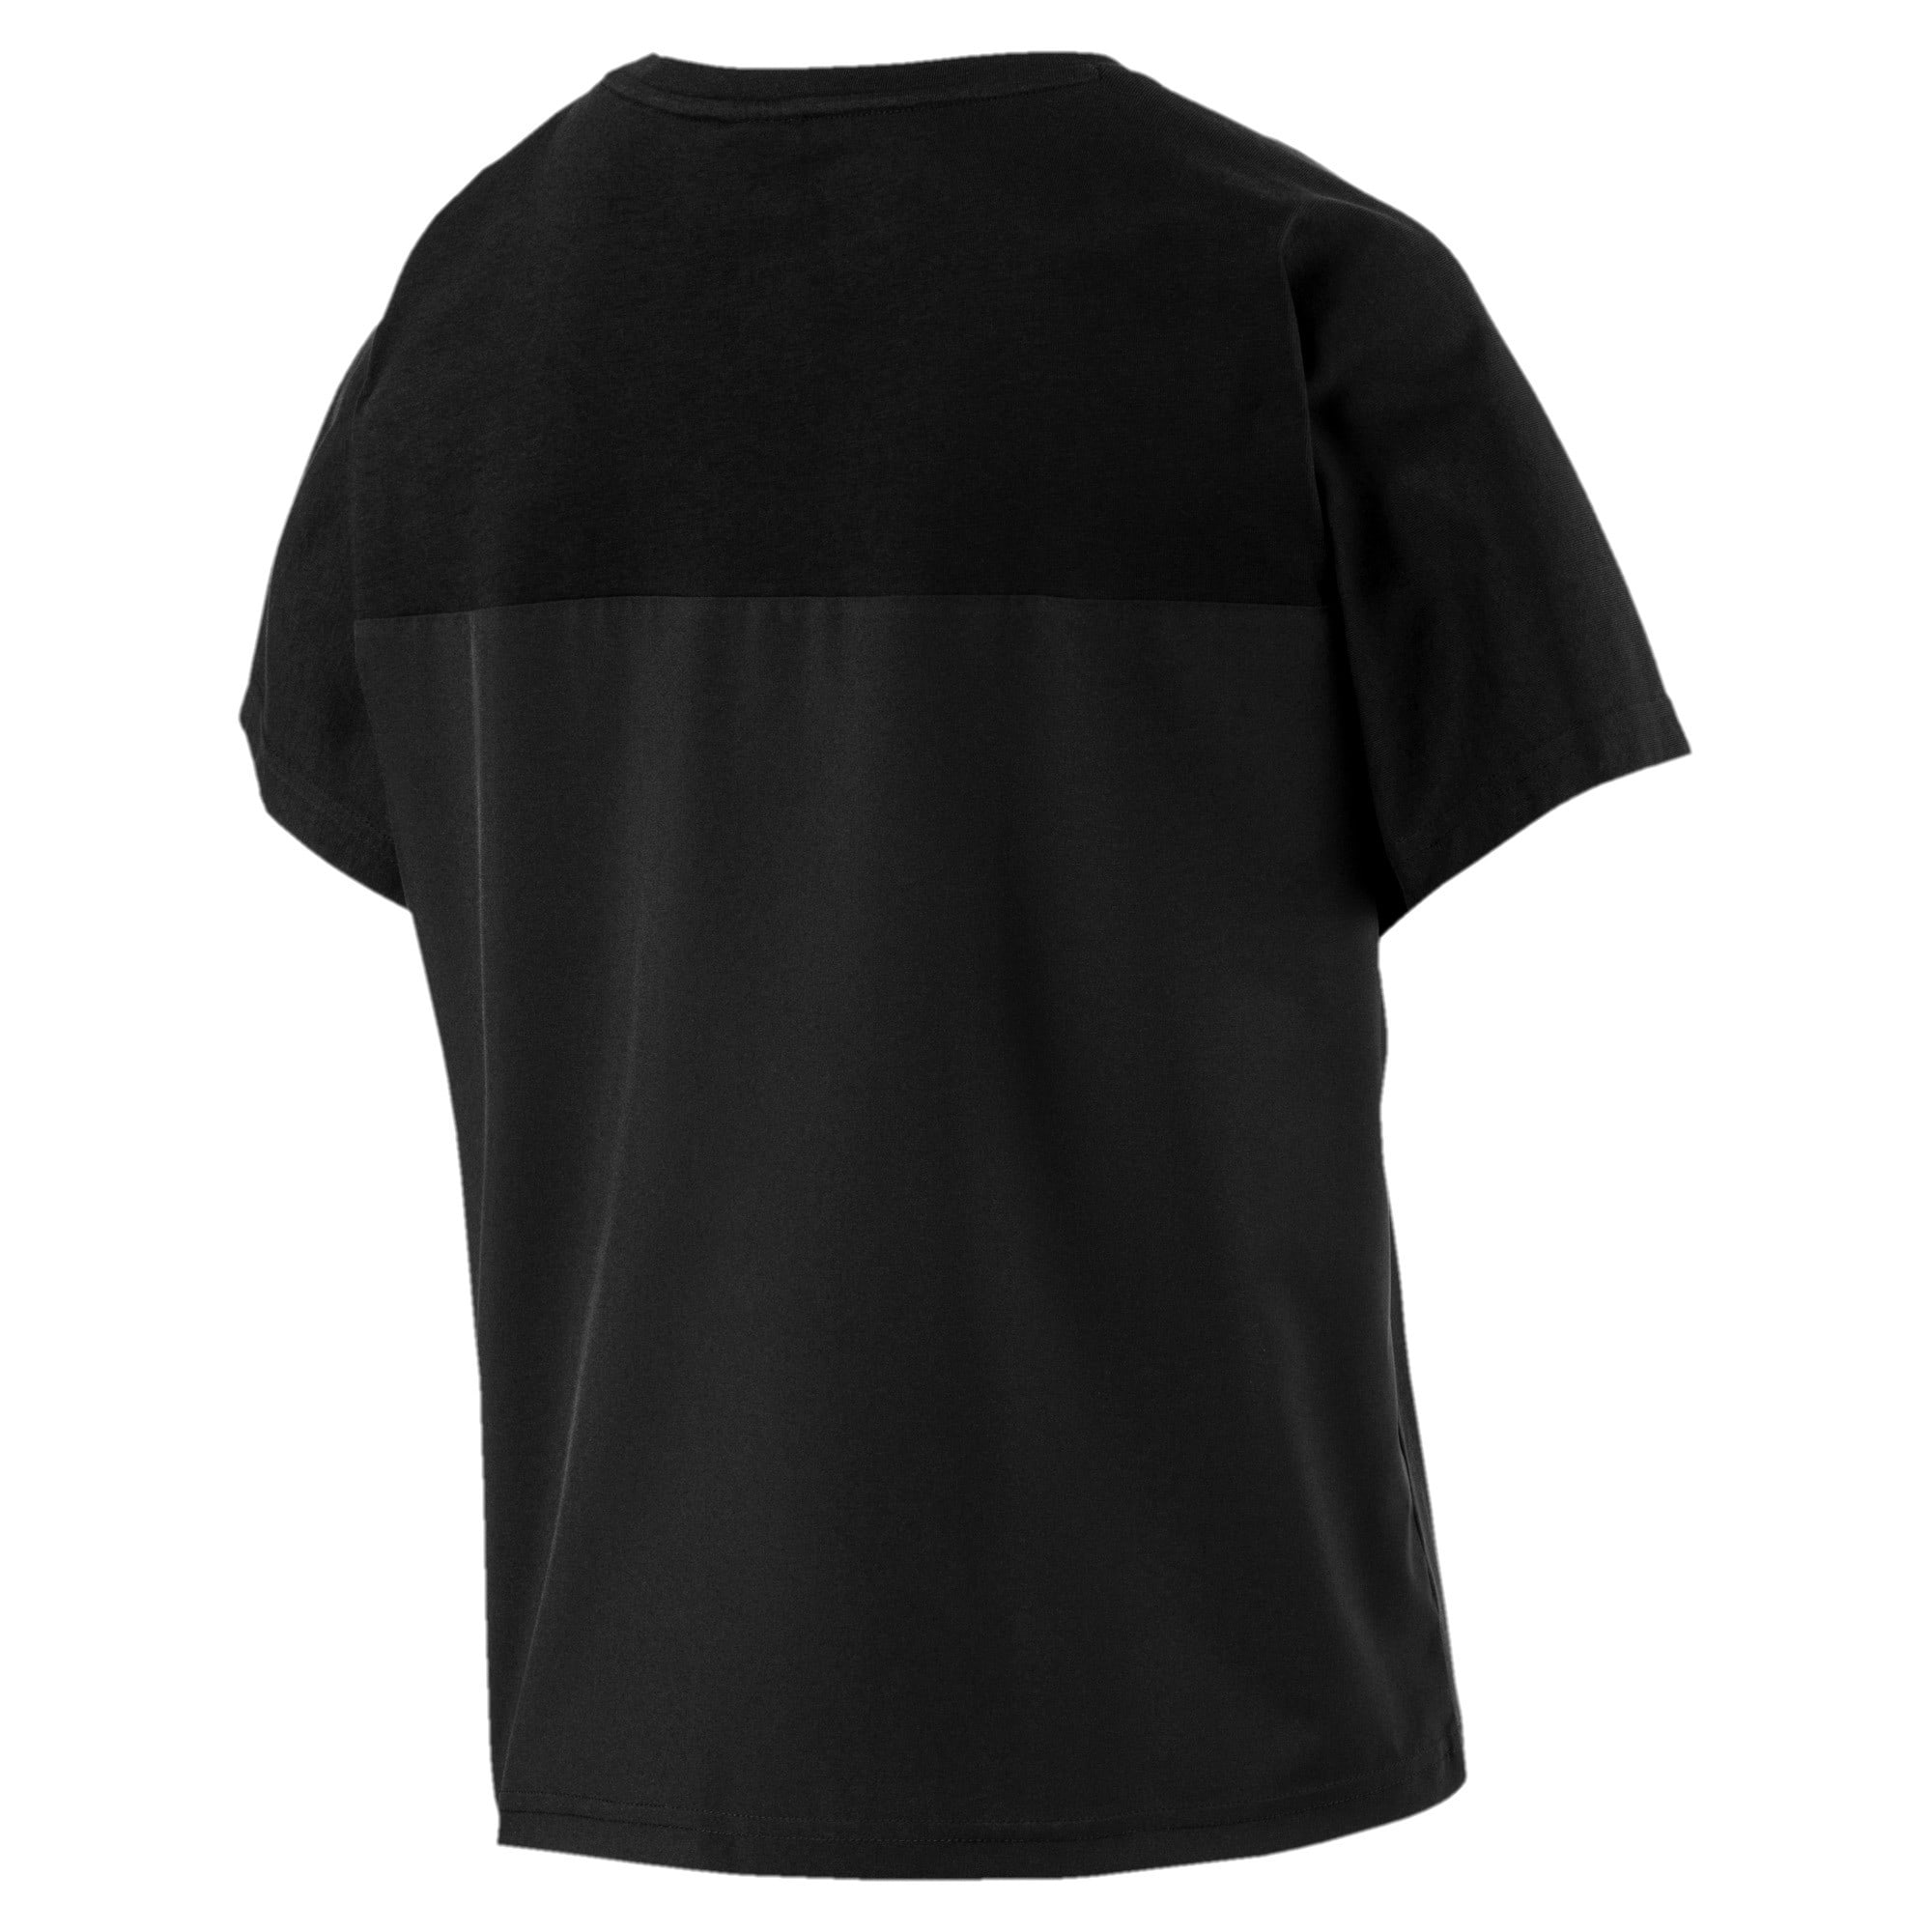 Thumbnail 3 of Evolution Women's T-Shirt, Puma Black, medium-IND